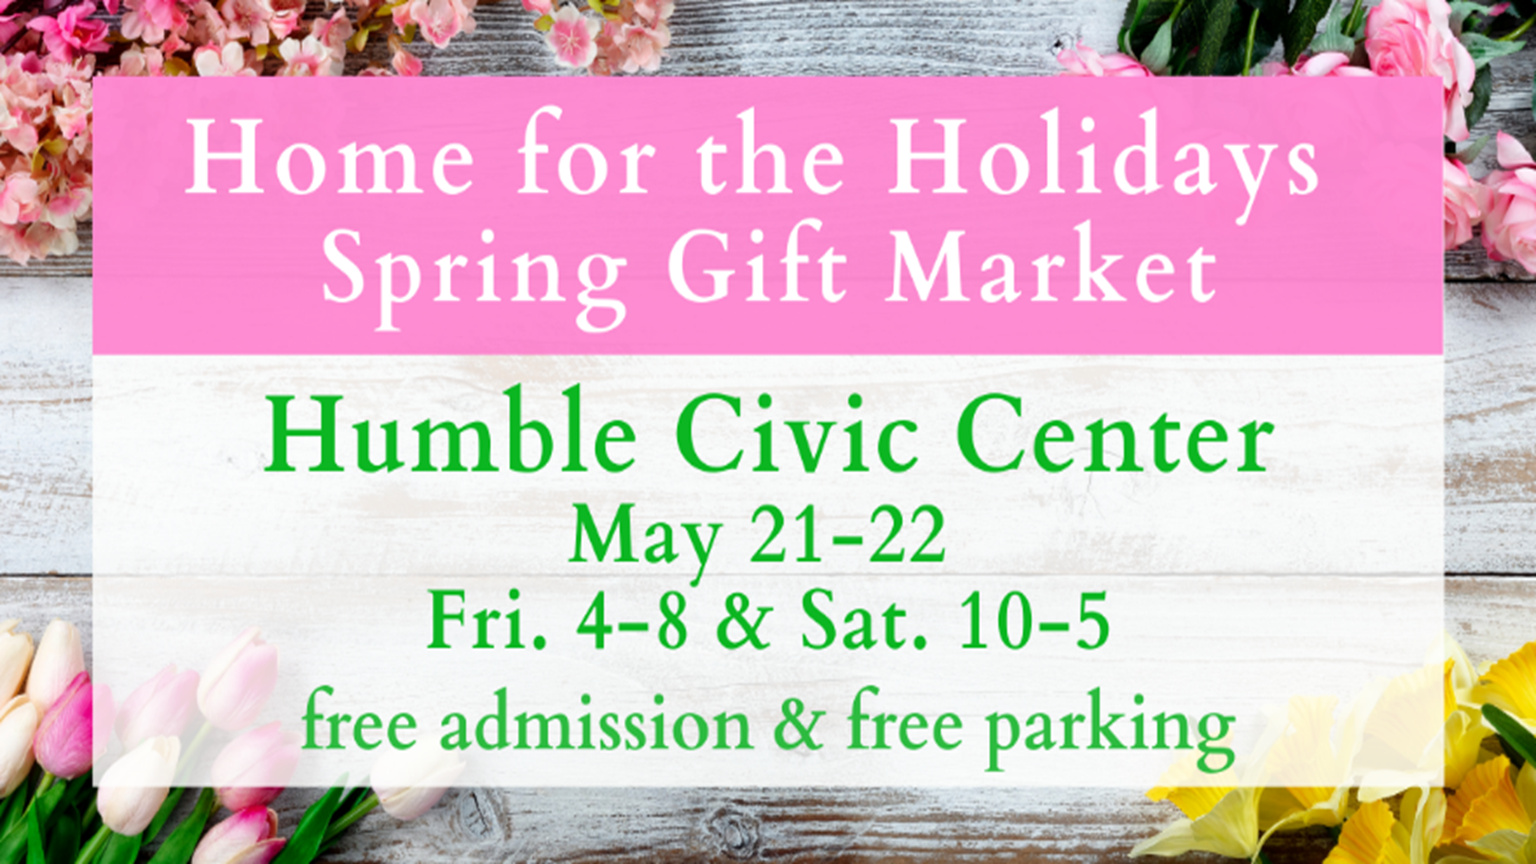 HOME FOR THE HOLIDAYS SPRING GIFT MARKET